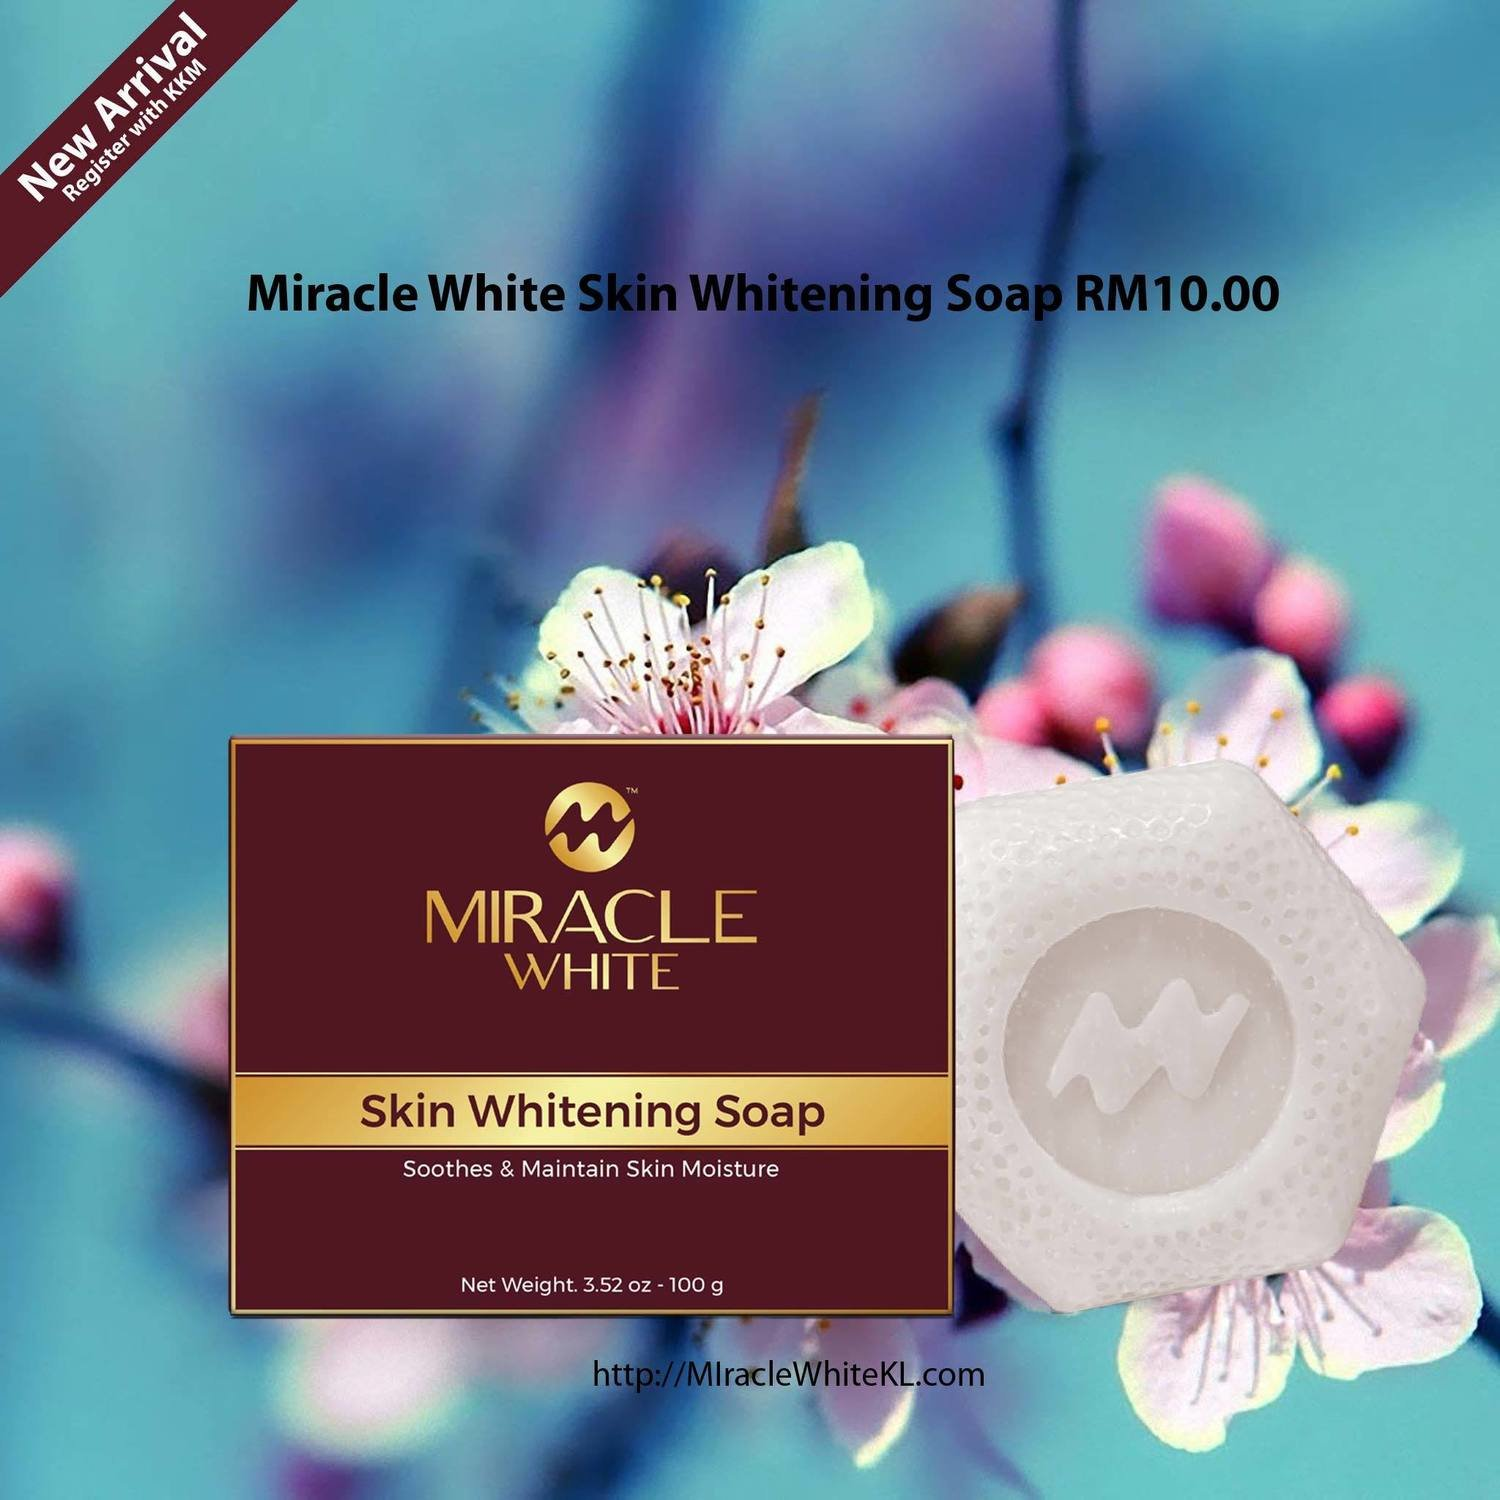 Miracle White Skin Whitening Soap